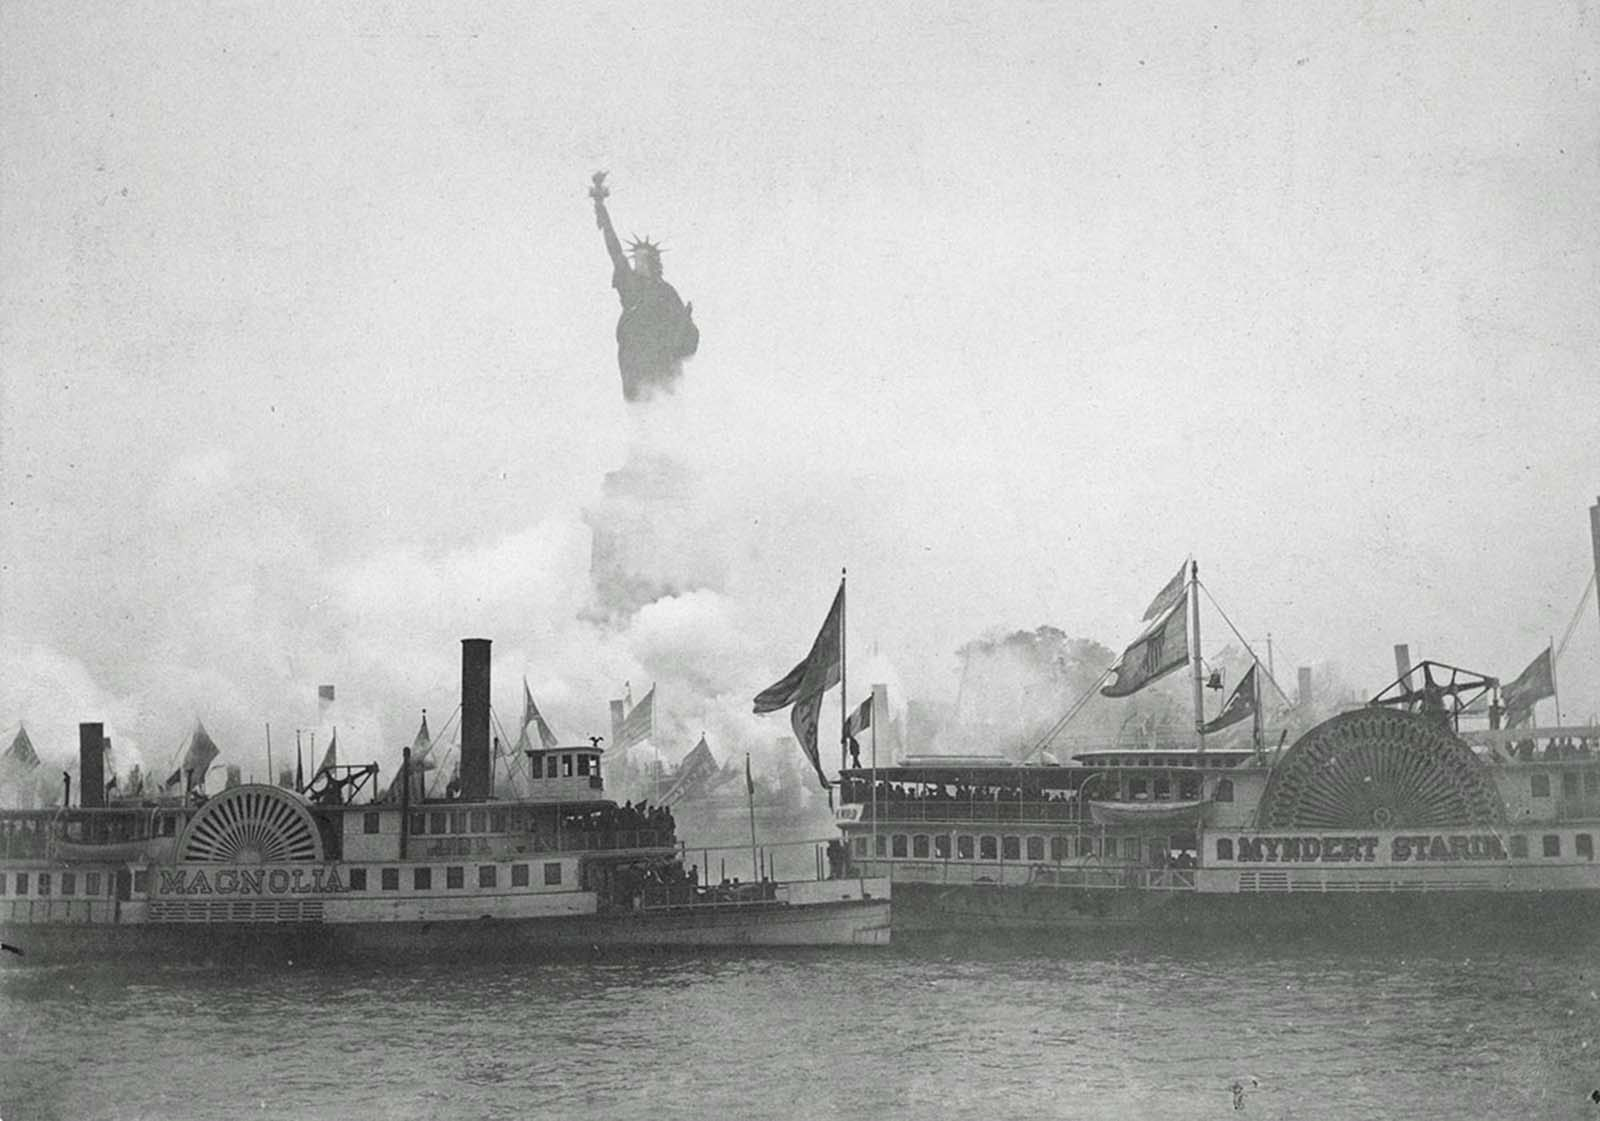 The inauguration of the Statue of Liberty, Liberty Enlightening the World, in New York Harbor, on October 28, 1886. A military and naval salute marked the event, presided over by U.S. President Grover Cleveland.